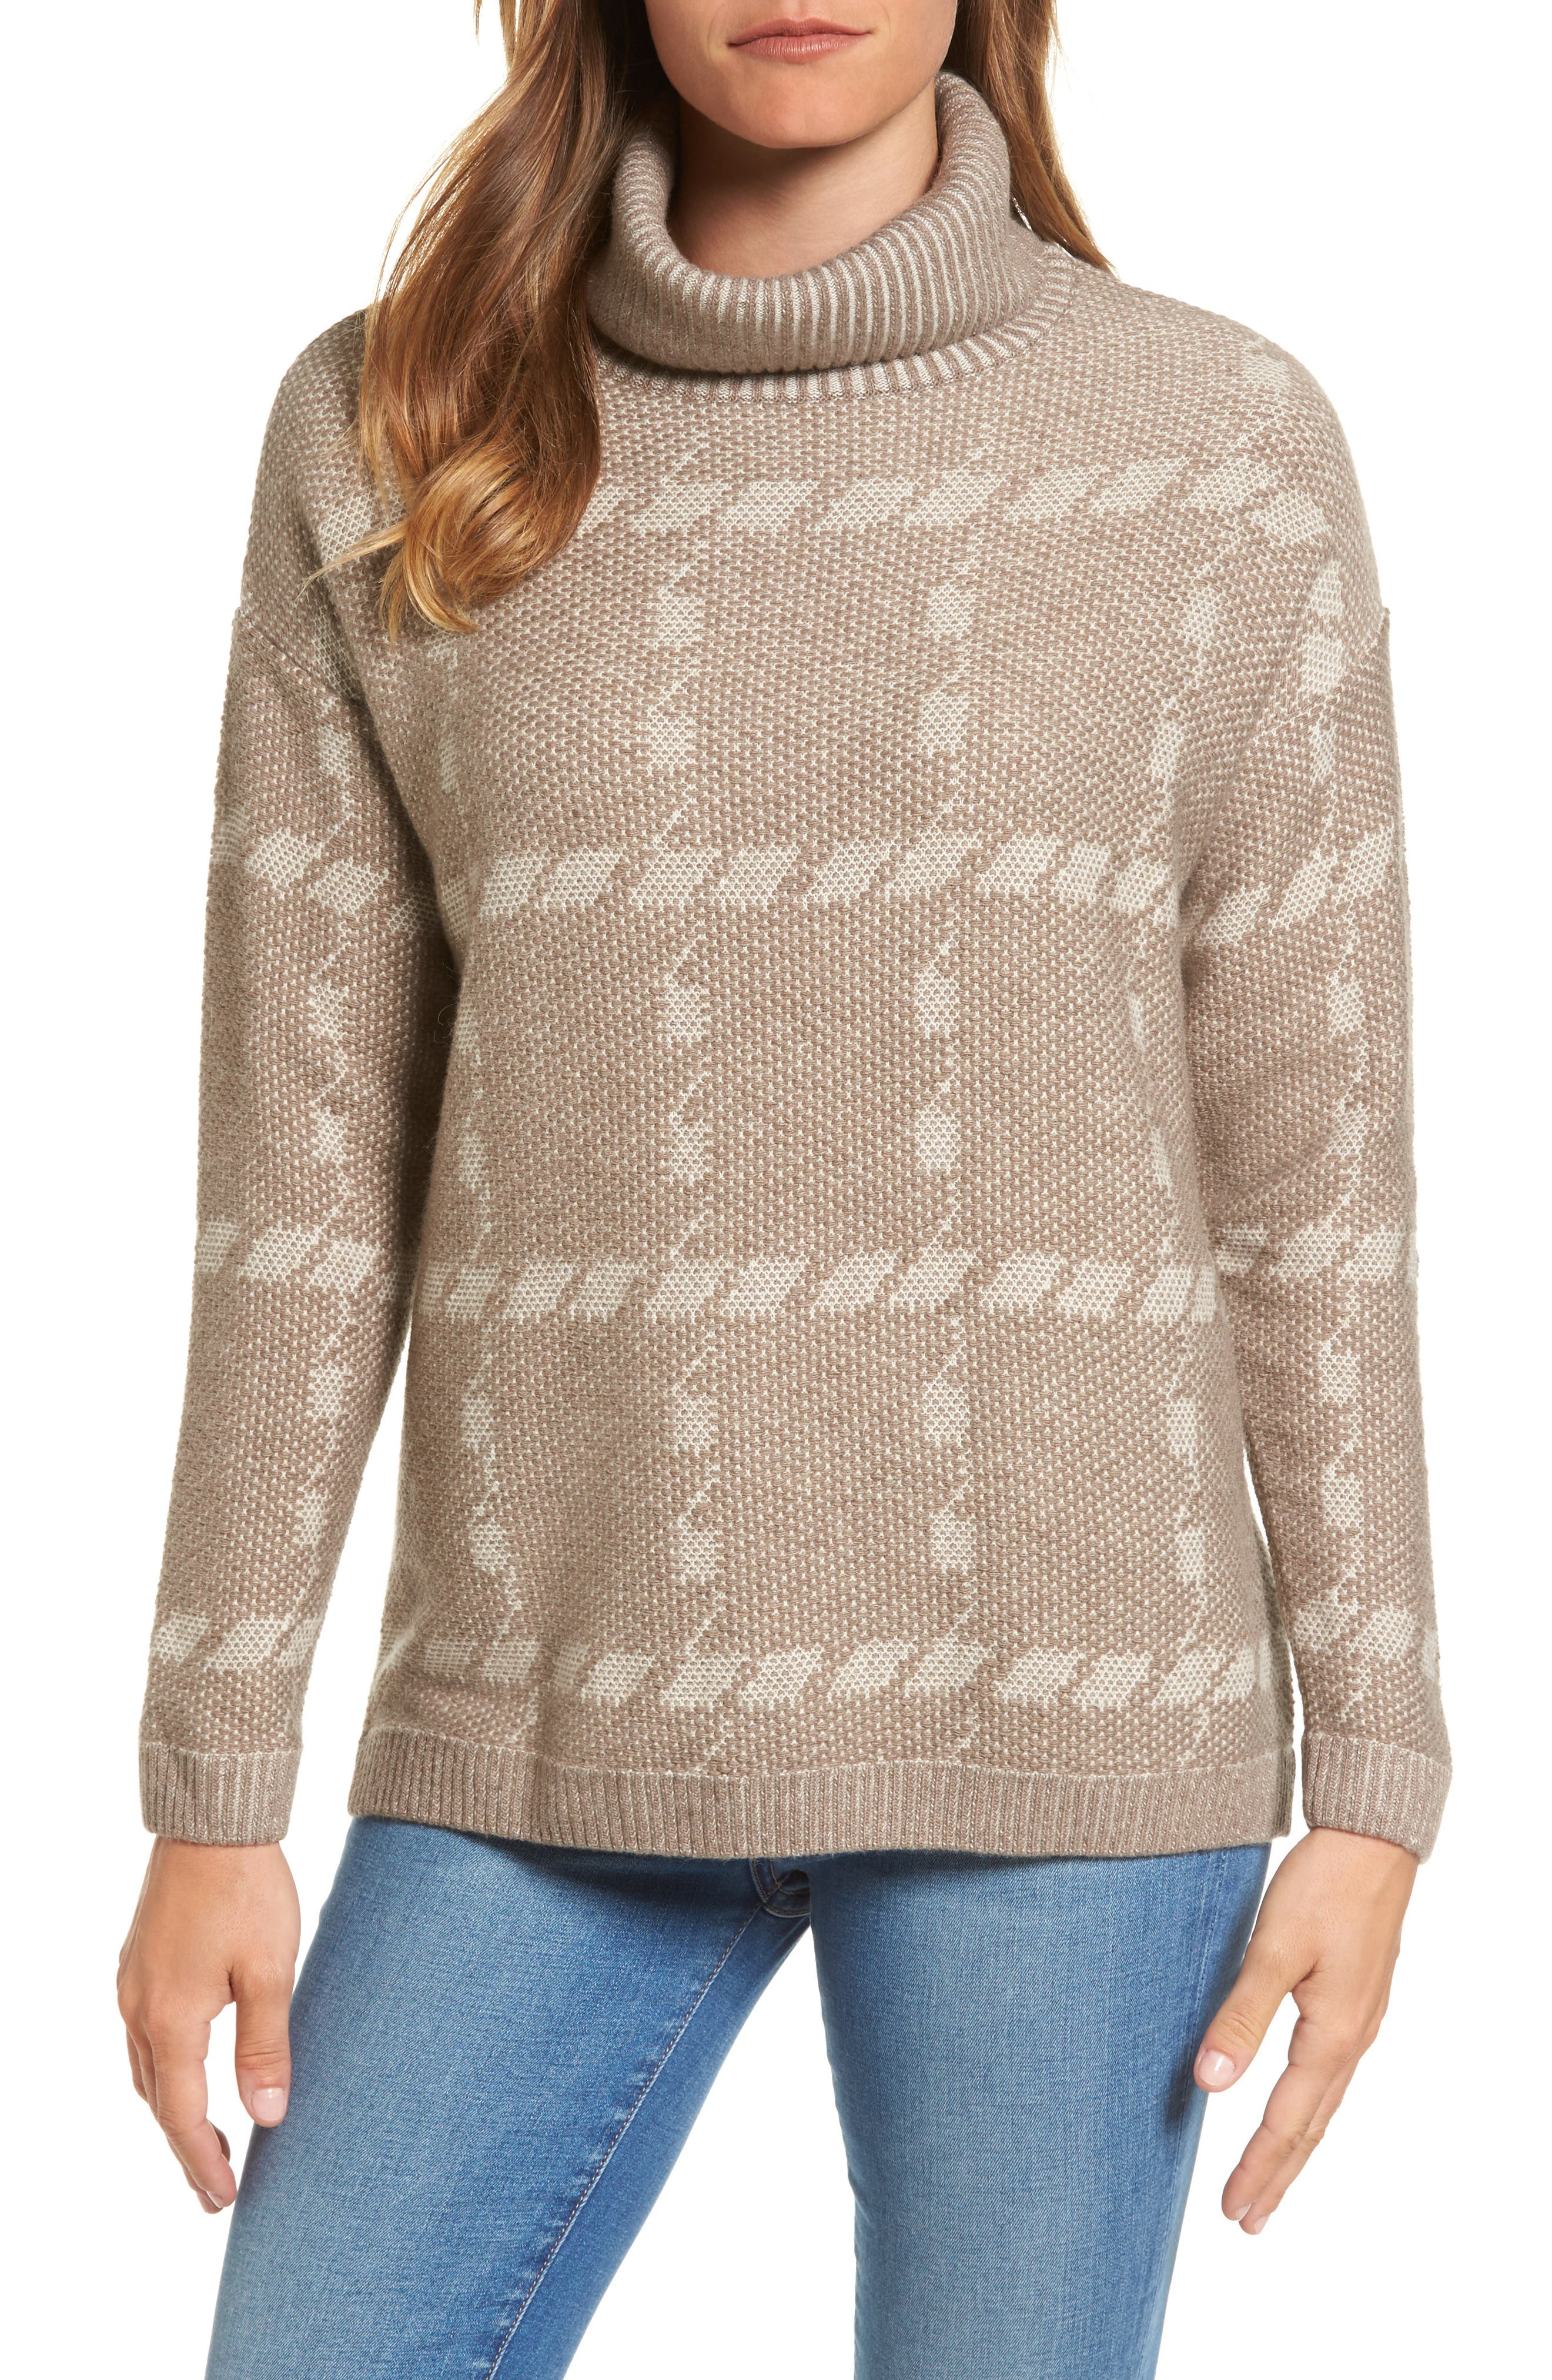 Glen Knit Merino Wool Blend Turtleneck Sweater,                             Main thumbnail 1, color,                             Taupe